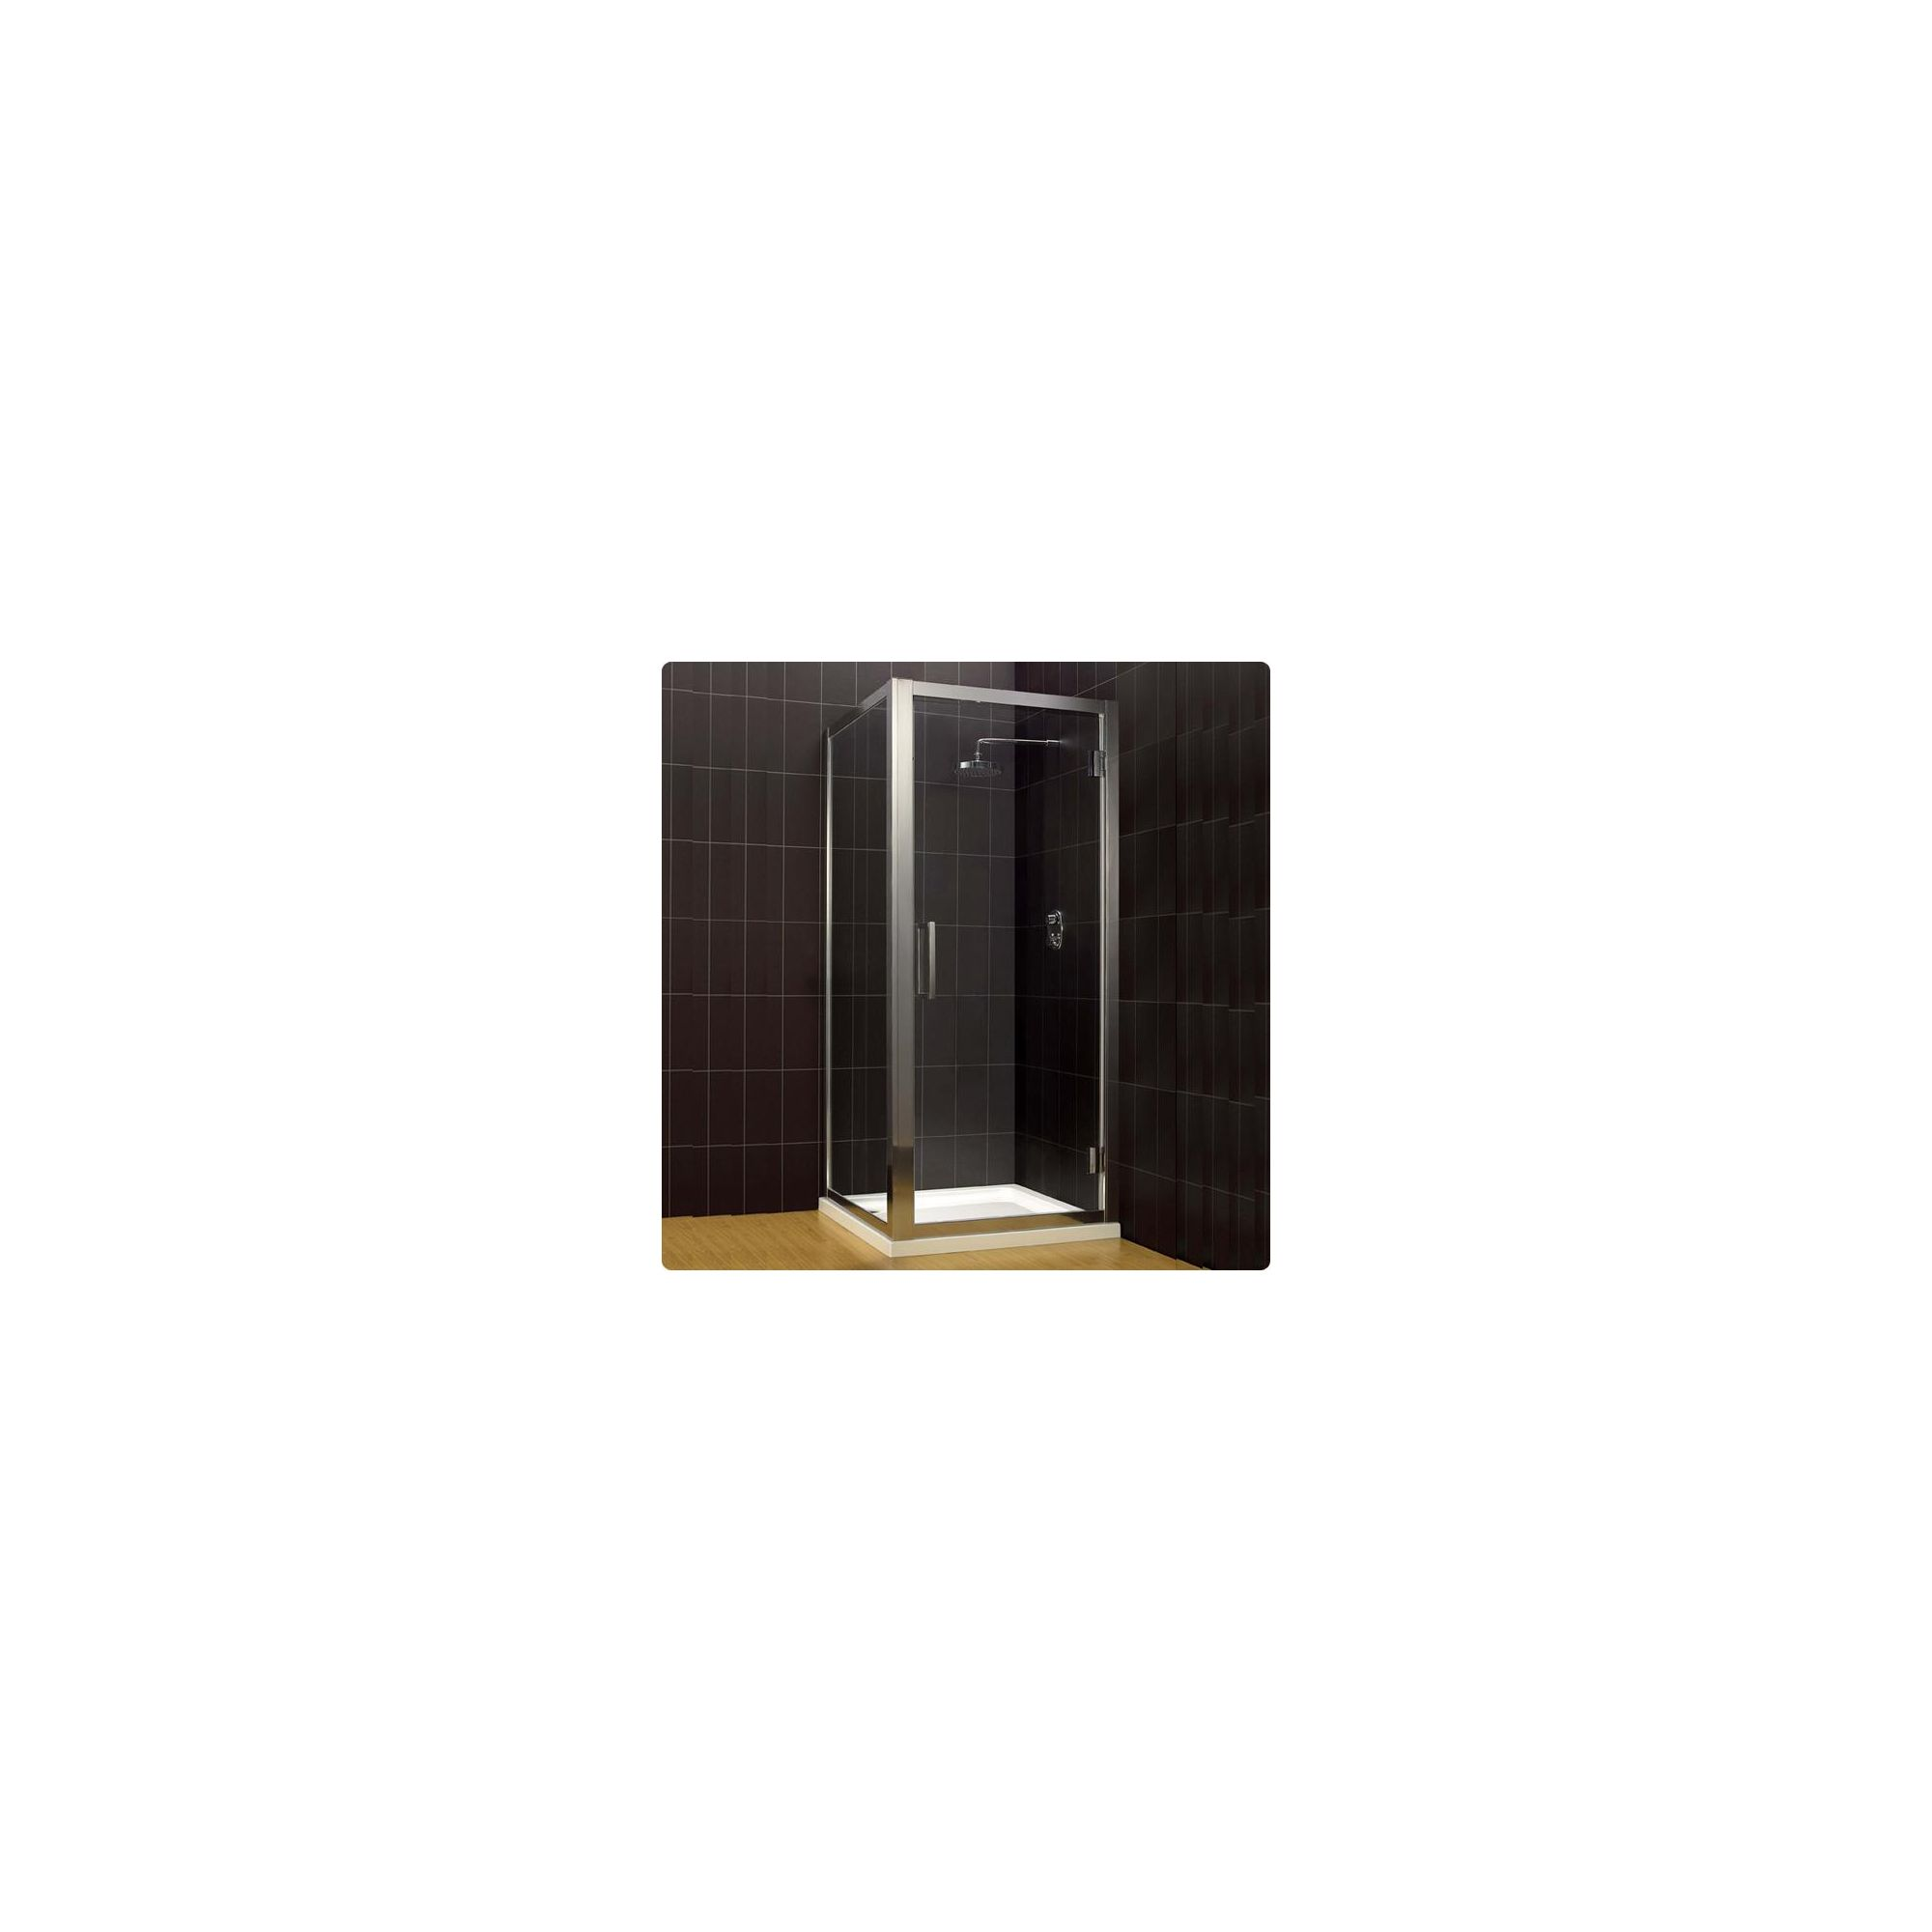 Duchy Supreme Silver Hinged Door Shower Enclosure, 1000mm x 900mm, Standard Tray, 8mm Glass at Tesco Direct